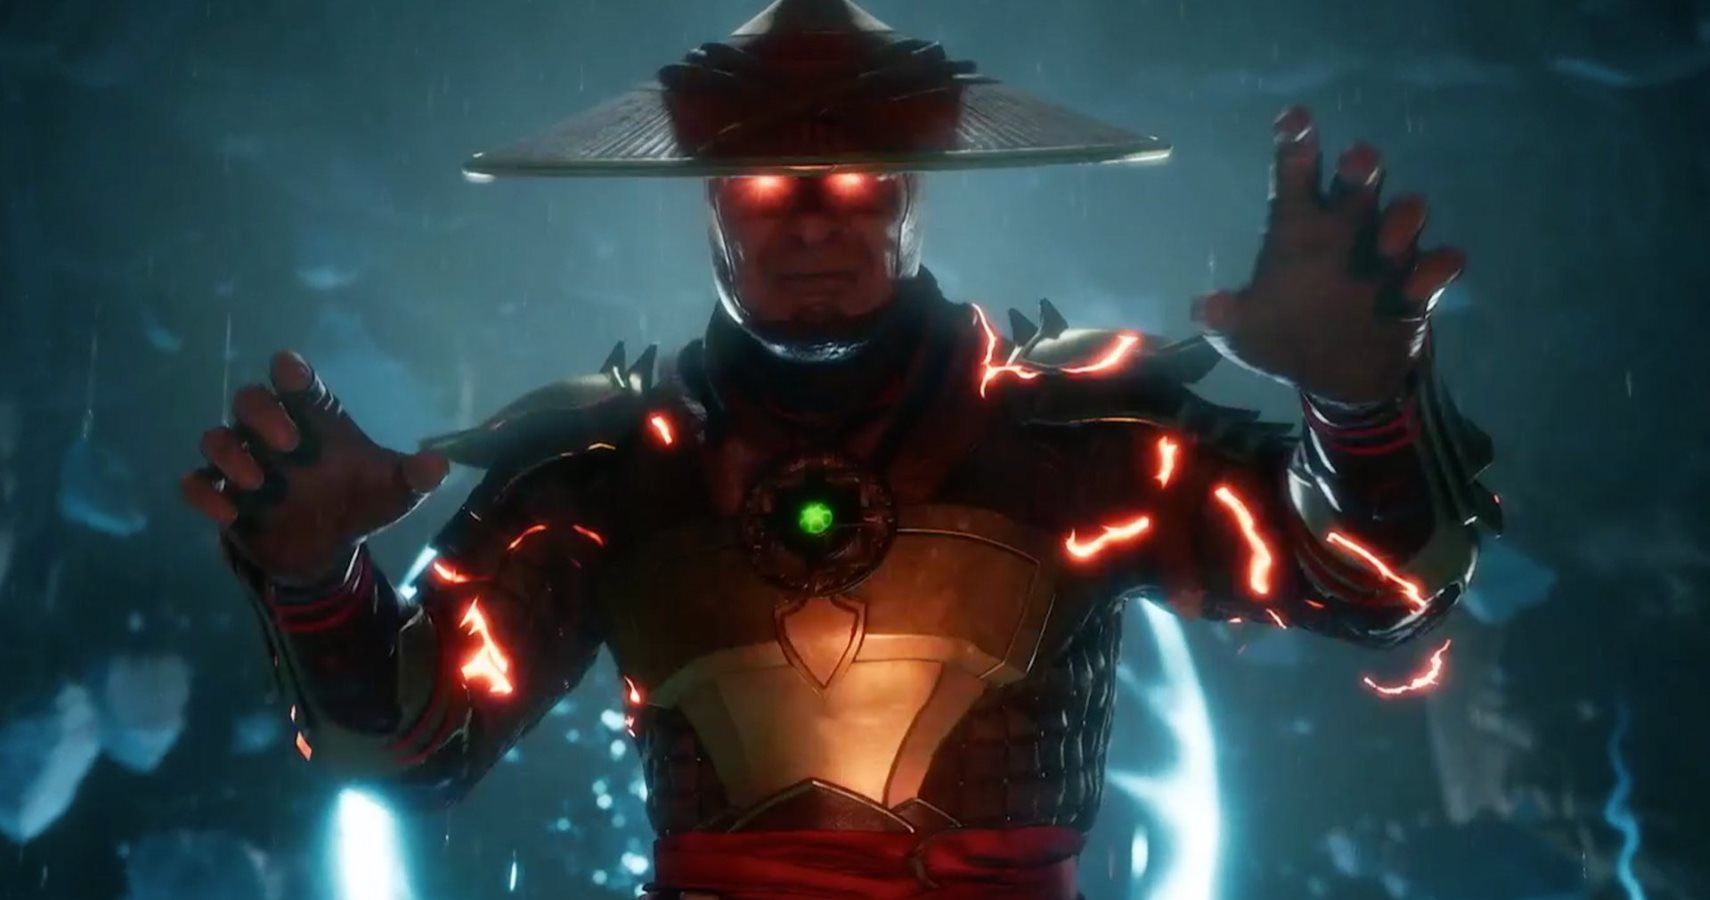 Ed Boon Is Once Again Teasing An Absolutely Bonkers DLC Character